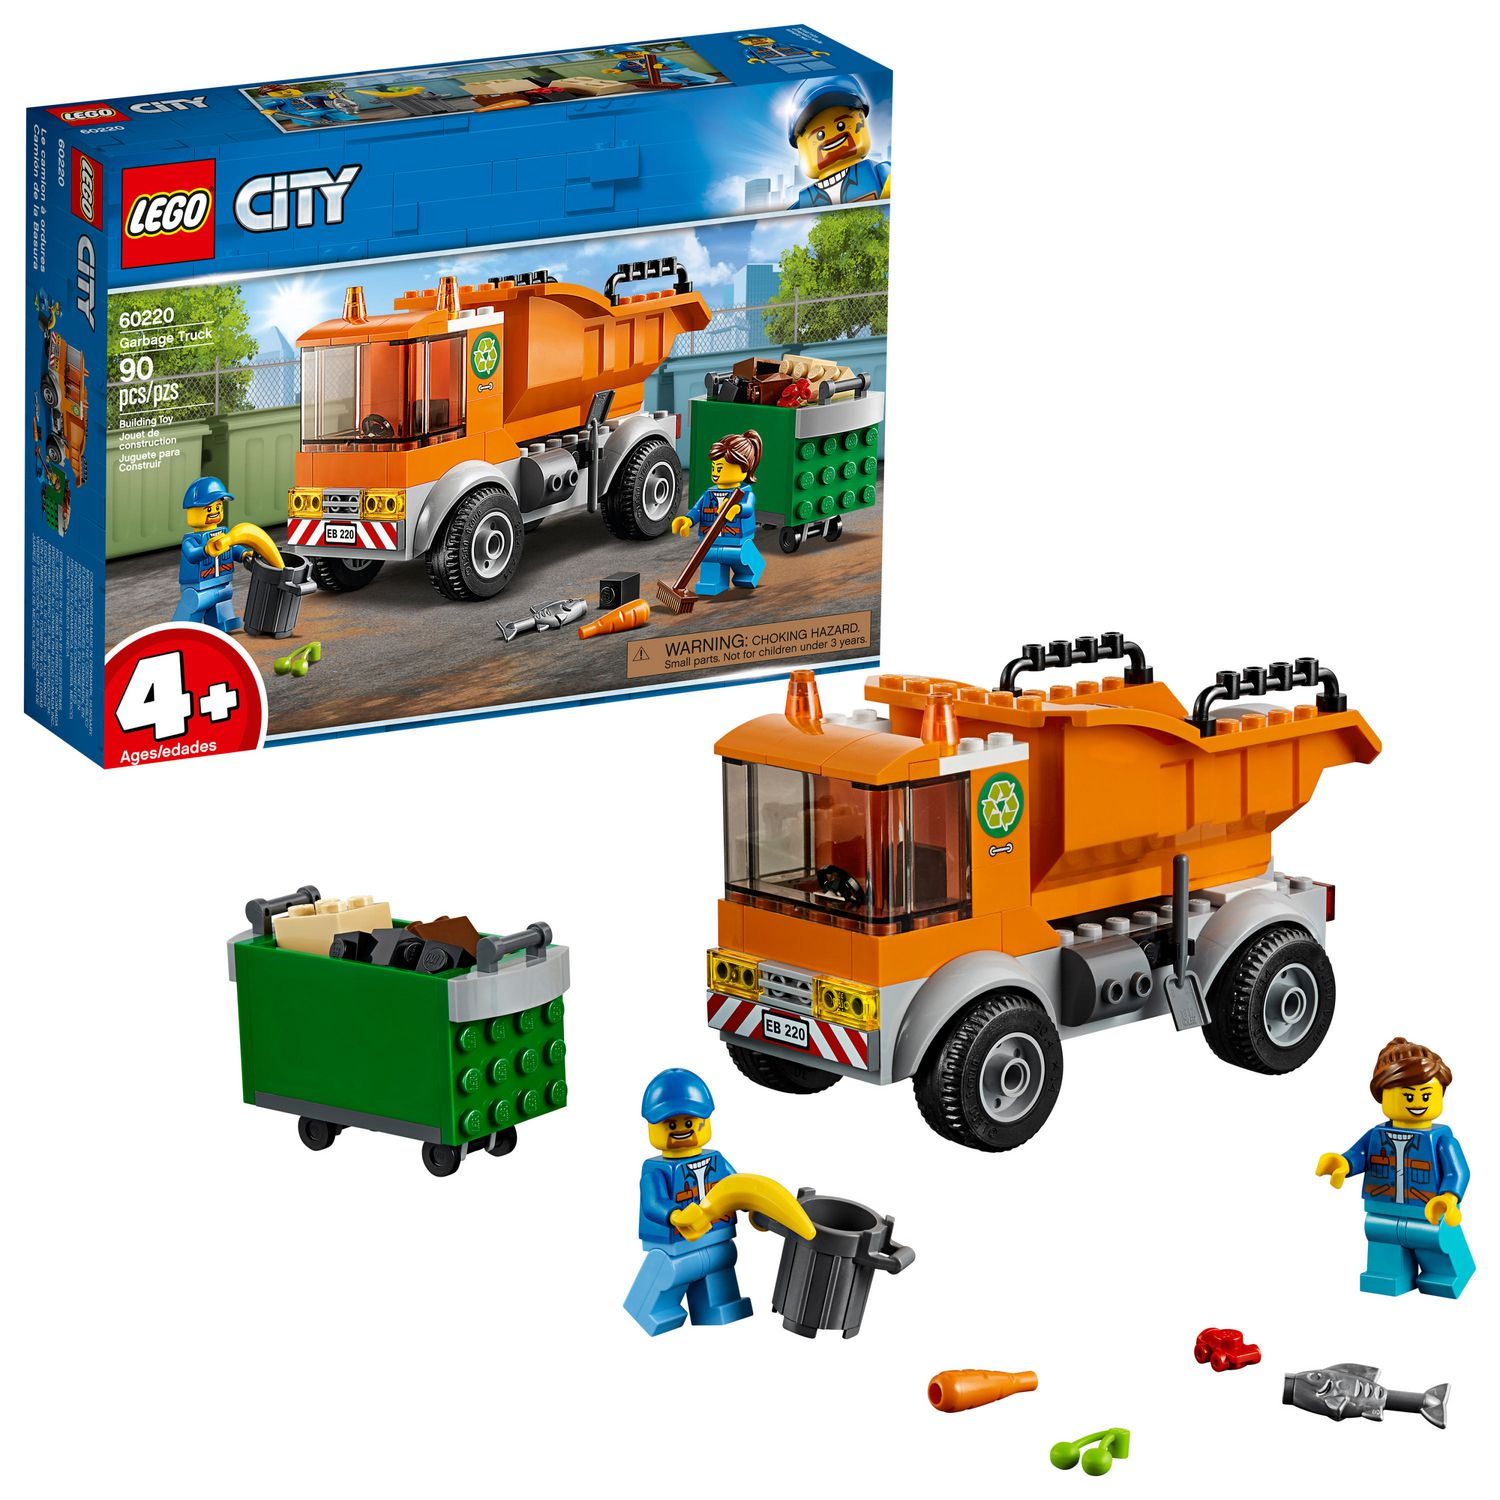 Le Great Camion À Ordures Lego Vehicles City 60220 Yfyb76gv